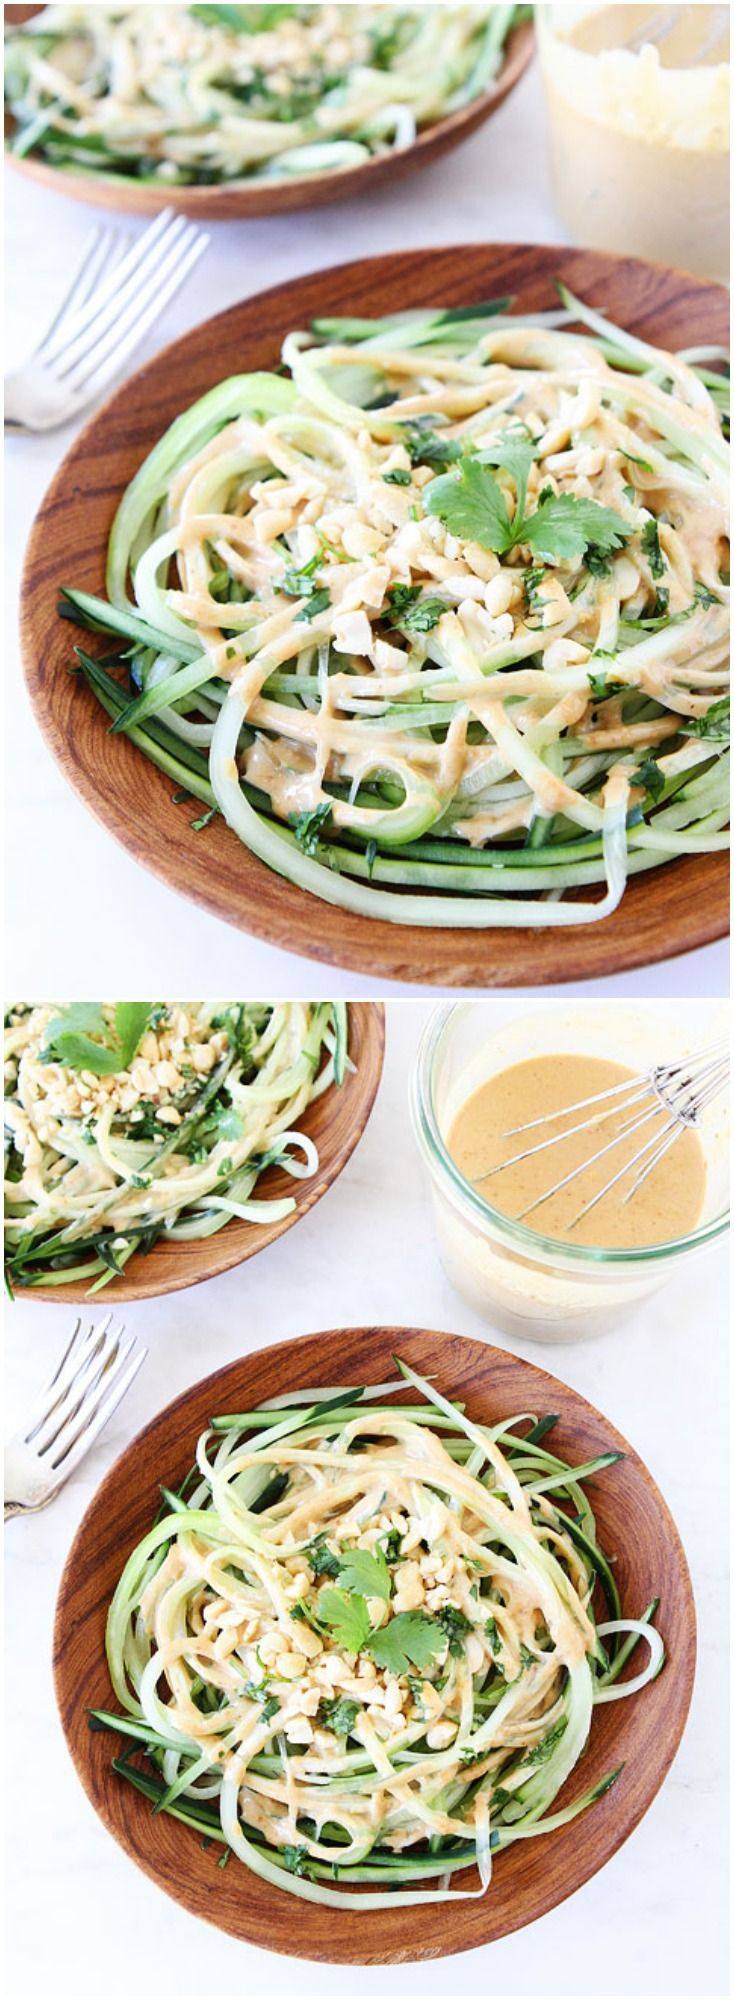 Cucumber Noodles with Peanut Sauce Recipe on twopeasandtheirpod.com Love this simple, fresh, and healthy noodle dish!